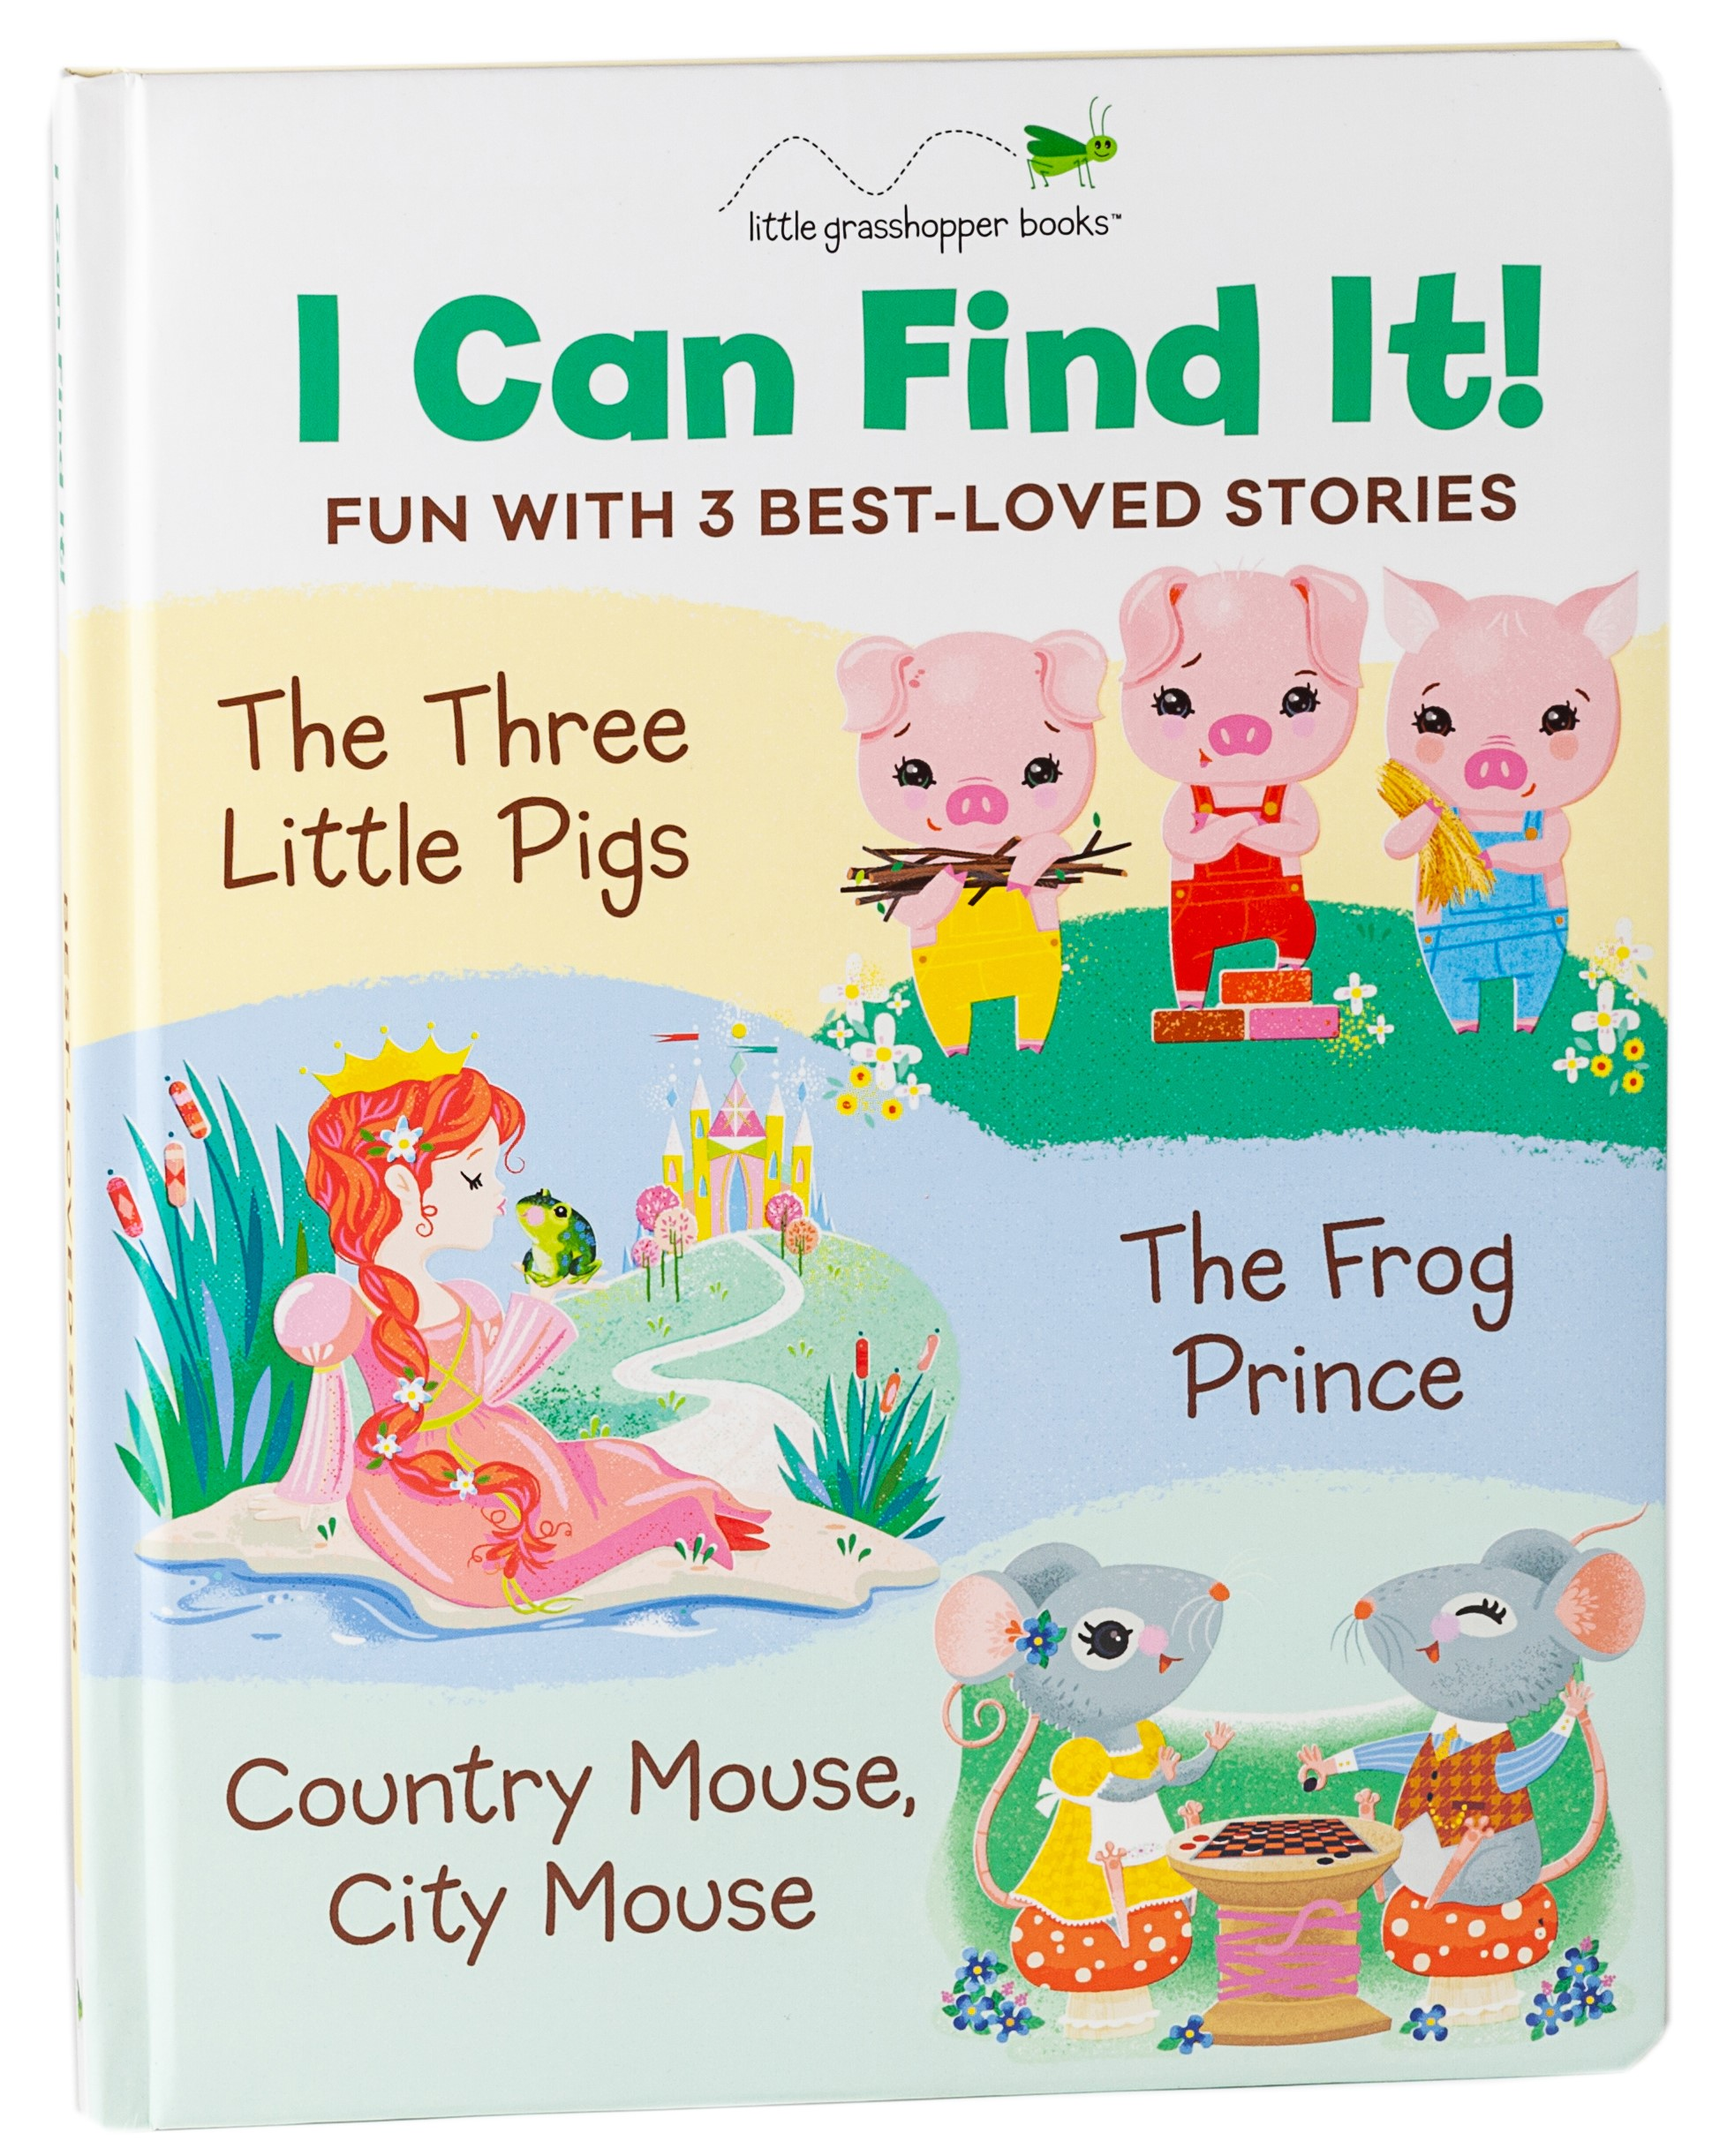 I Can Find It! Fun with 3 Best-Loved Stories (Book 3 Downloadable Apps!): The Three Little Pigs, The Frog Prince, Country Mouse City Mouse